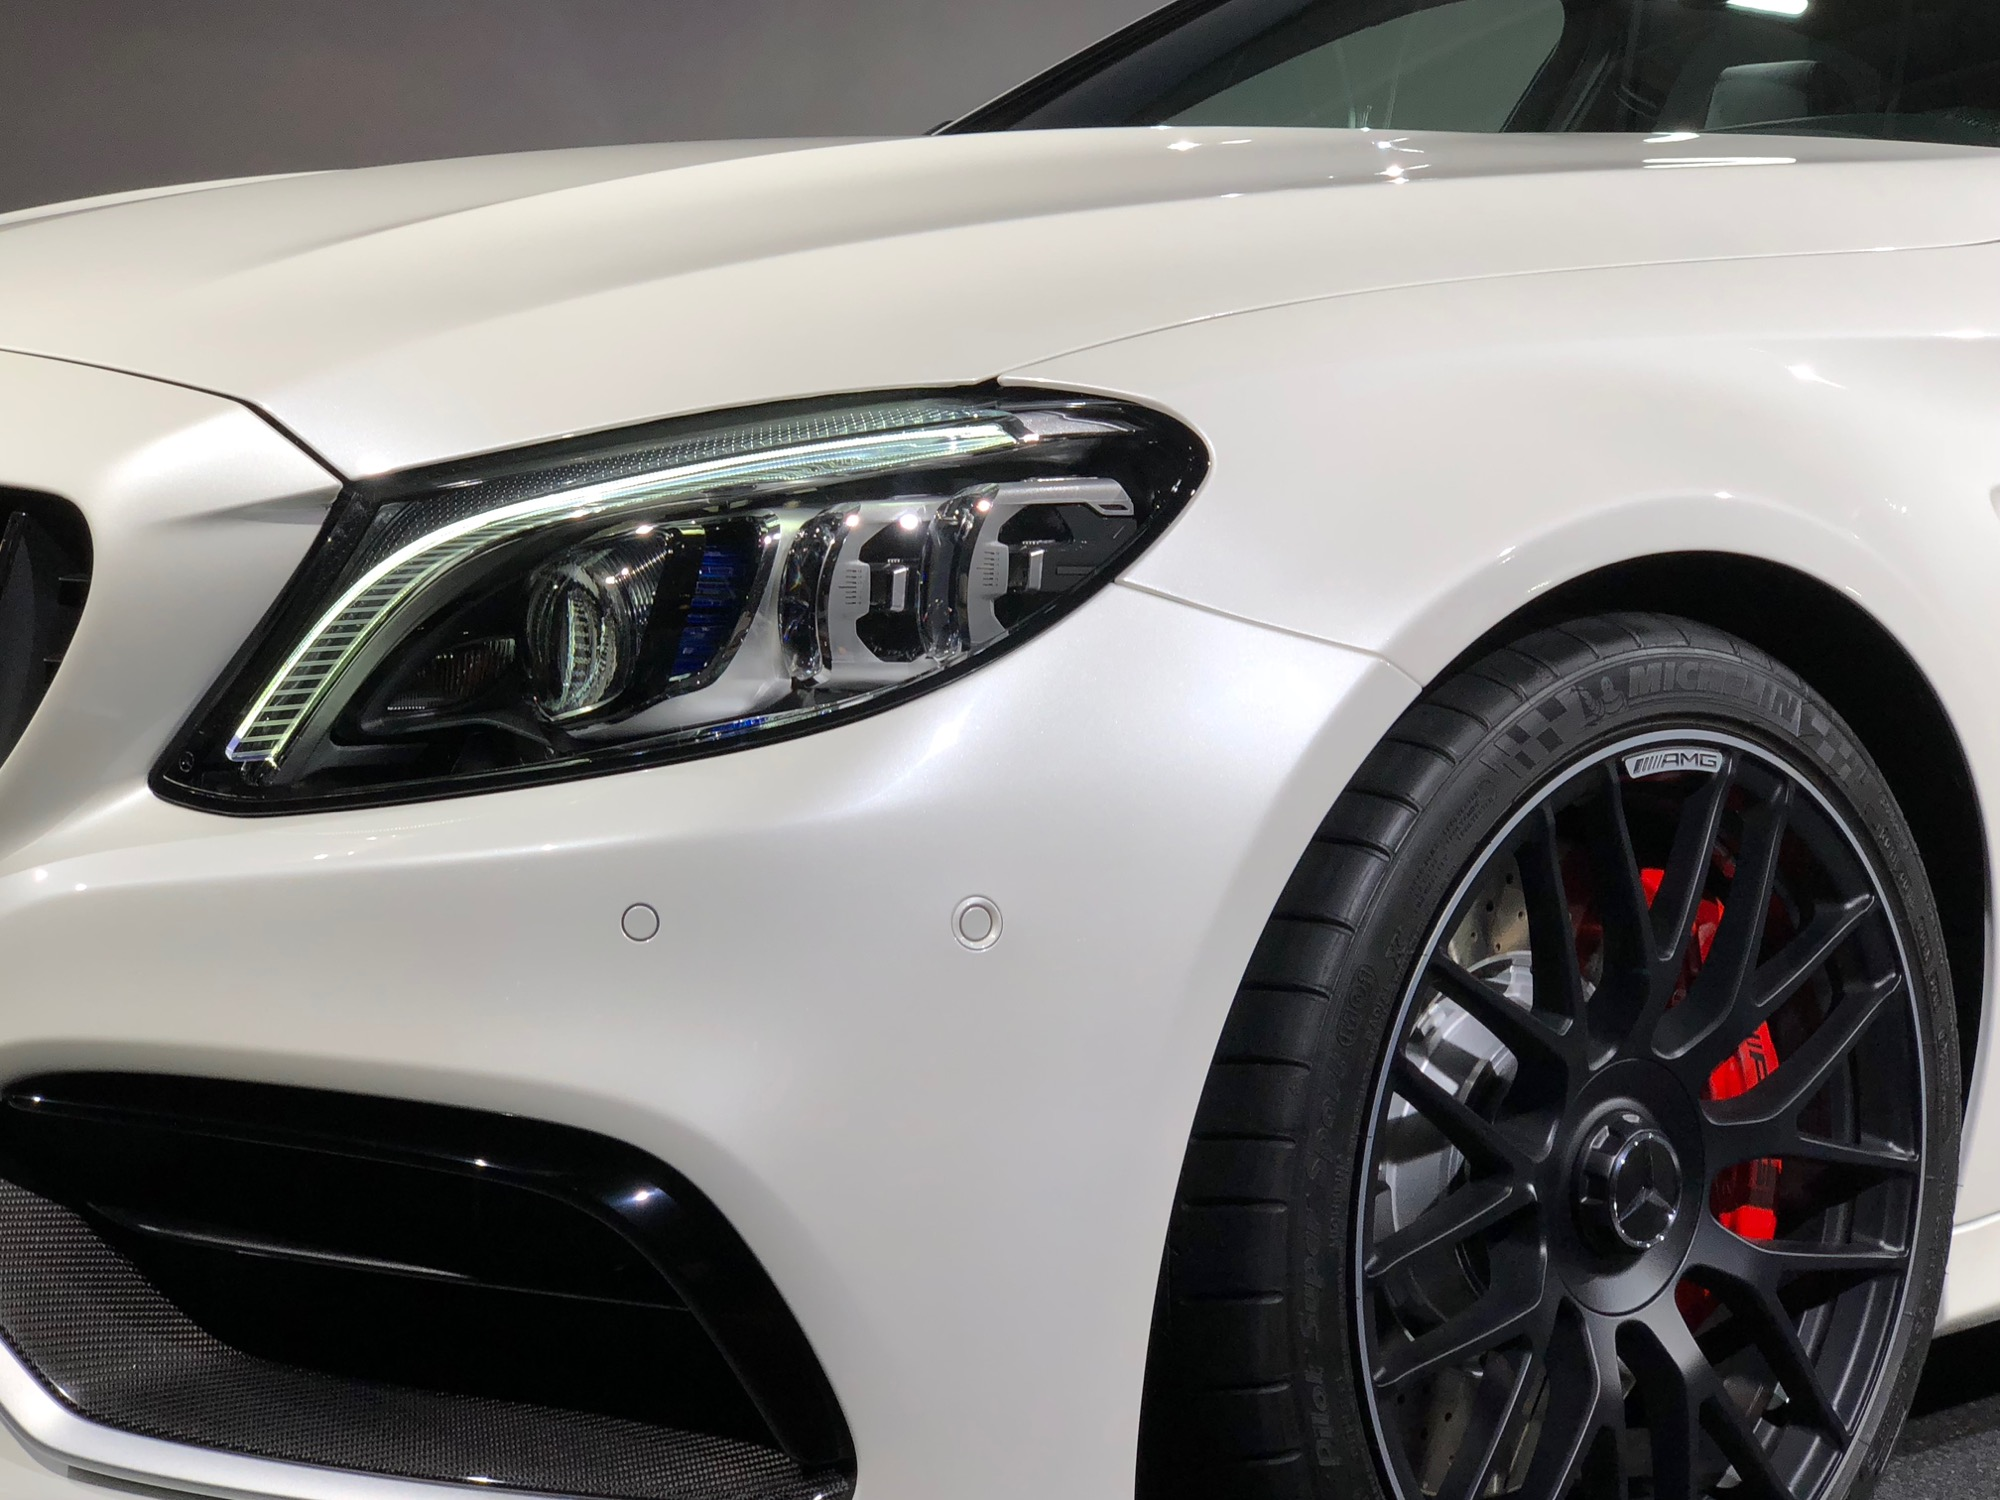 2018 C-Class: Why the mid-size Mercedes-Benz misses MBUX | CarAdvice